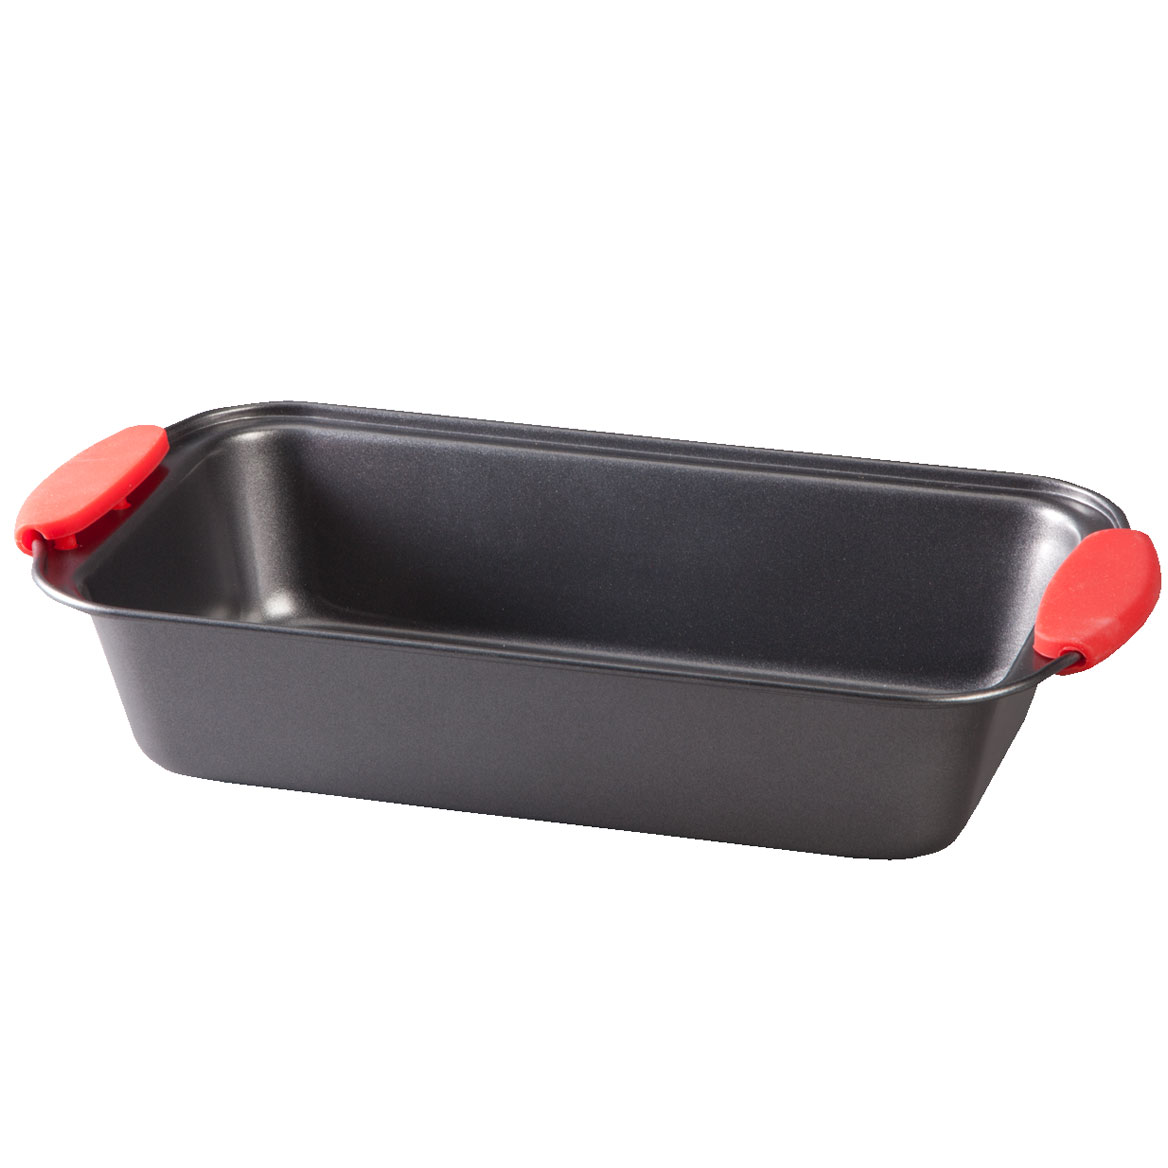 Loaf Pan with Red Silicone Handles by Home-Style Kitchen-356750